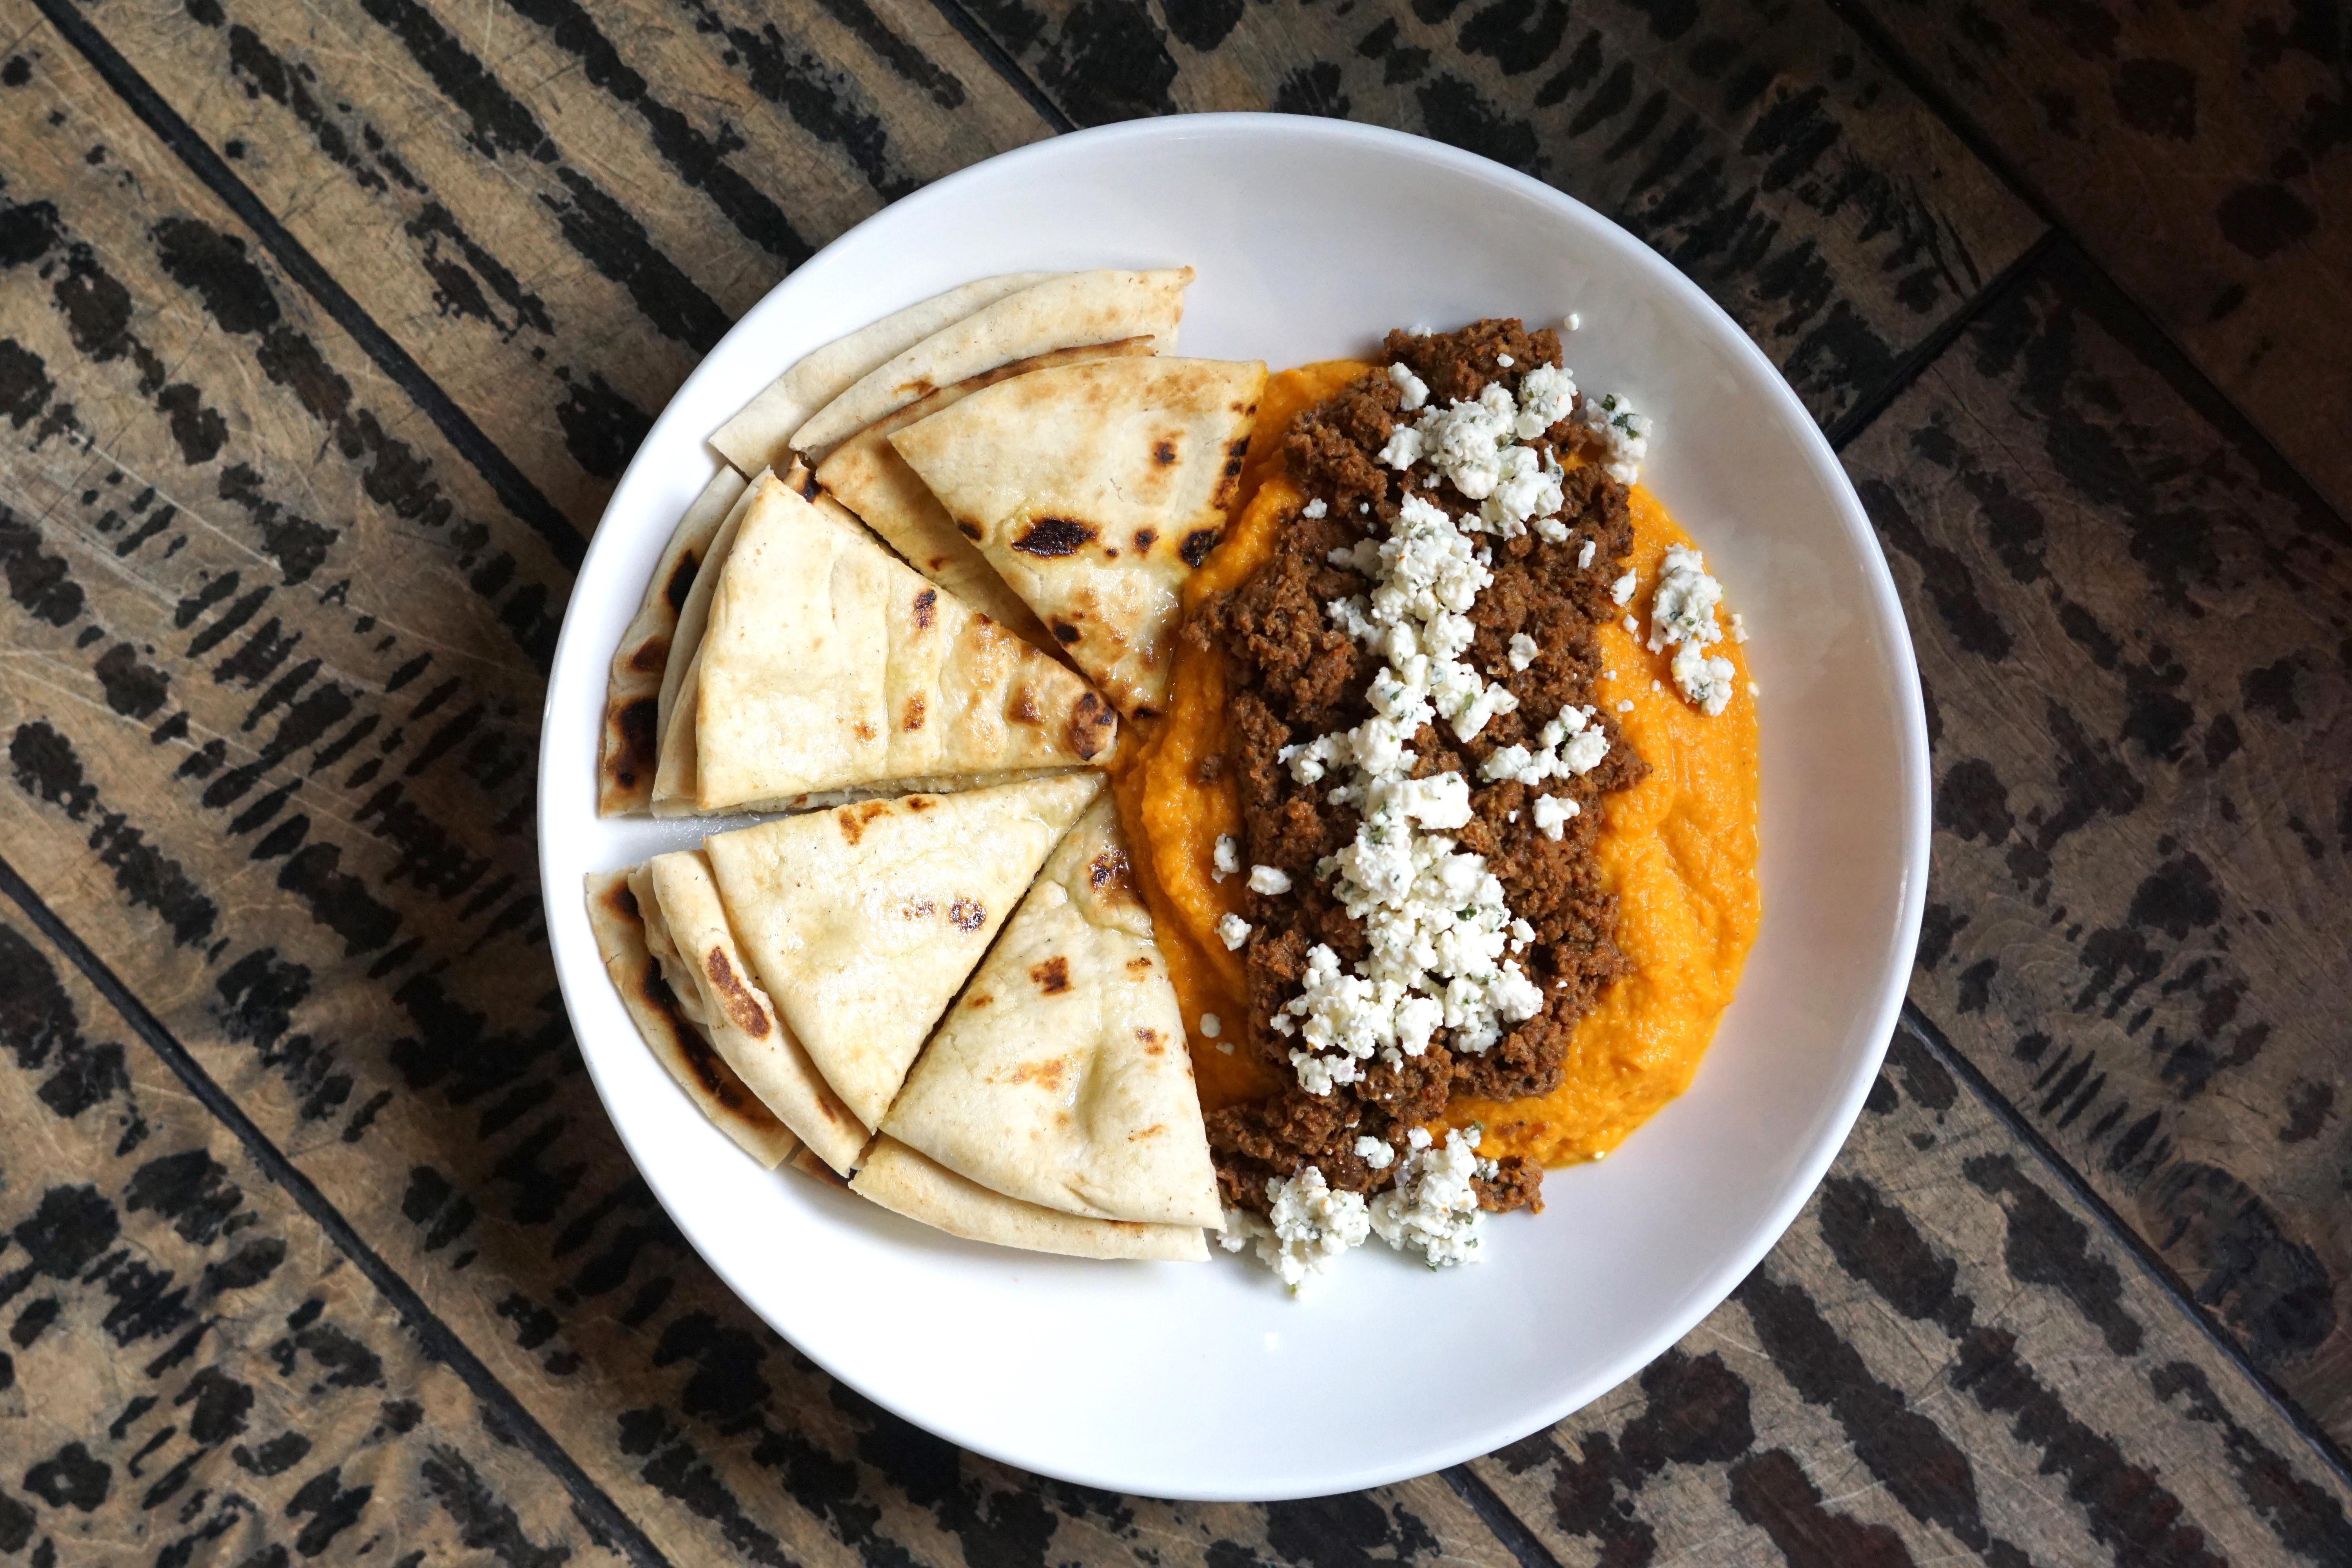 Carrots stand in for chickpeas to create an unconventional hummus. It's topped off with lamb merguez sausage ragu and crumbled feta, and served with grilled pita triangles. (Image: Courtesy Rustico)